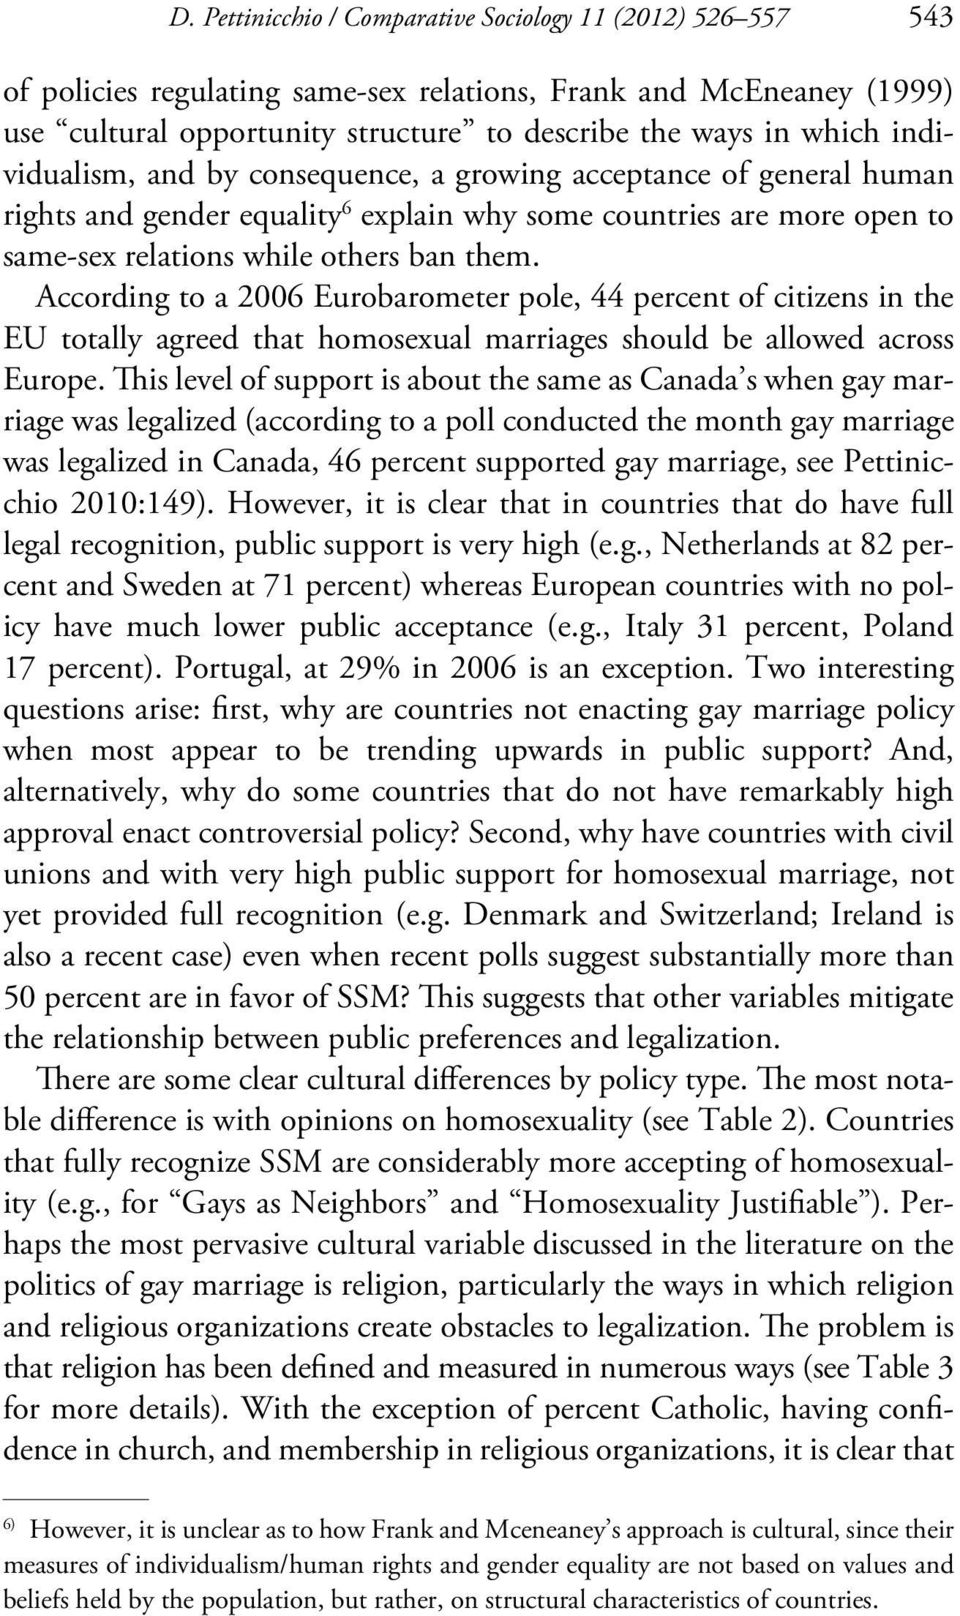 According to a 2006 Eurobarometer pole, 44 percent of citizens in the EU totally agreed that homosexual marriages should be allowed across Europe.